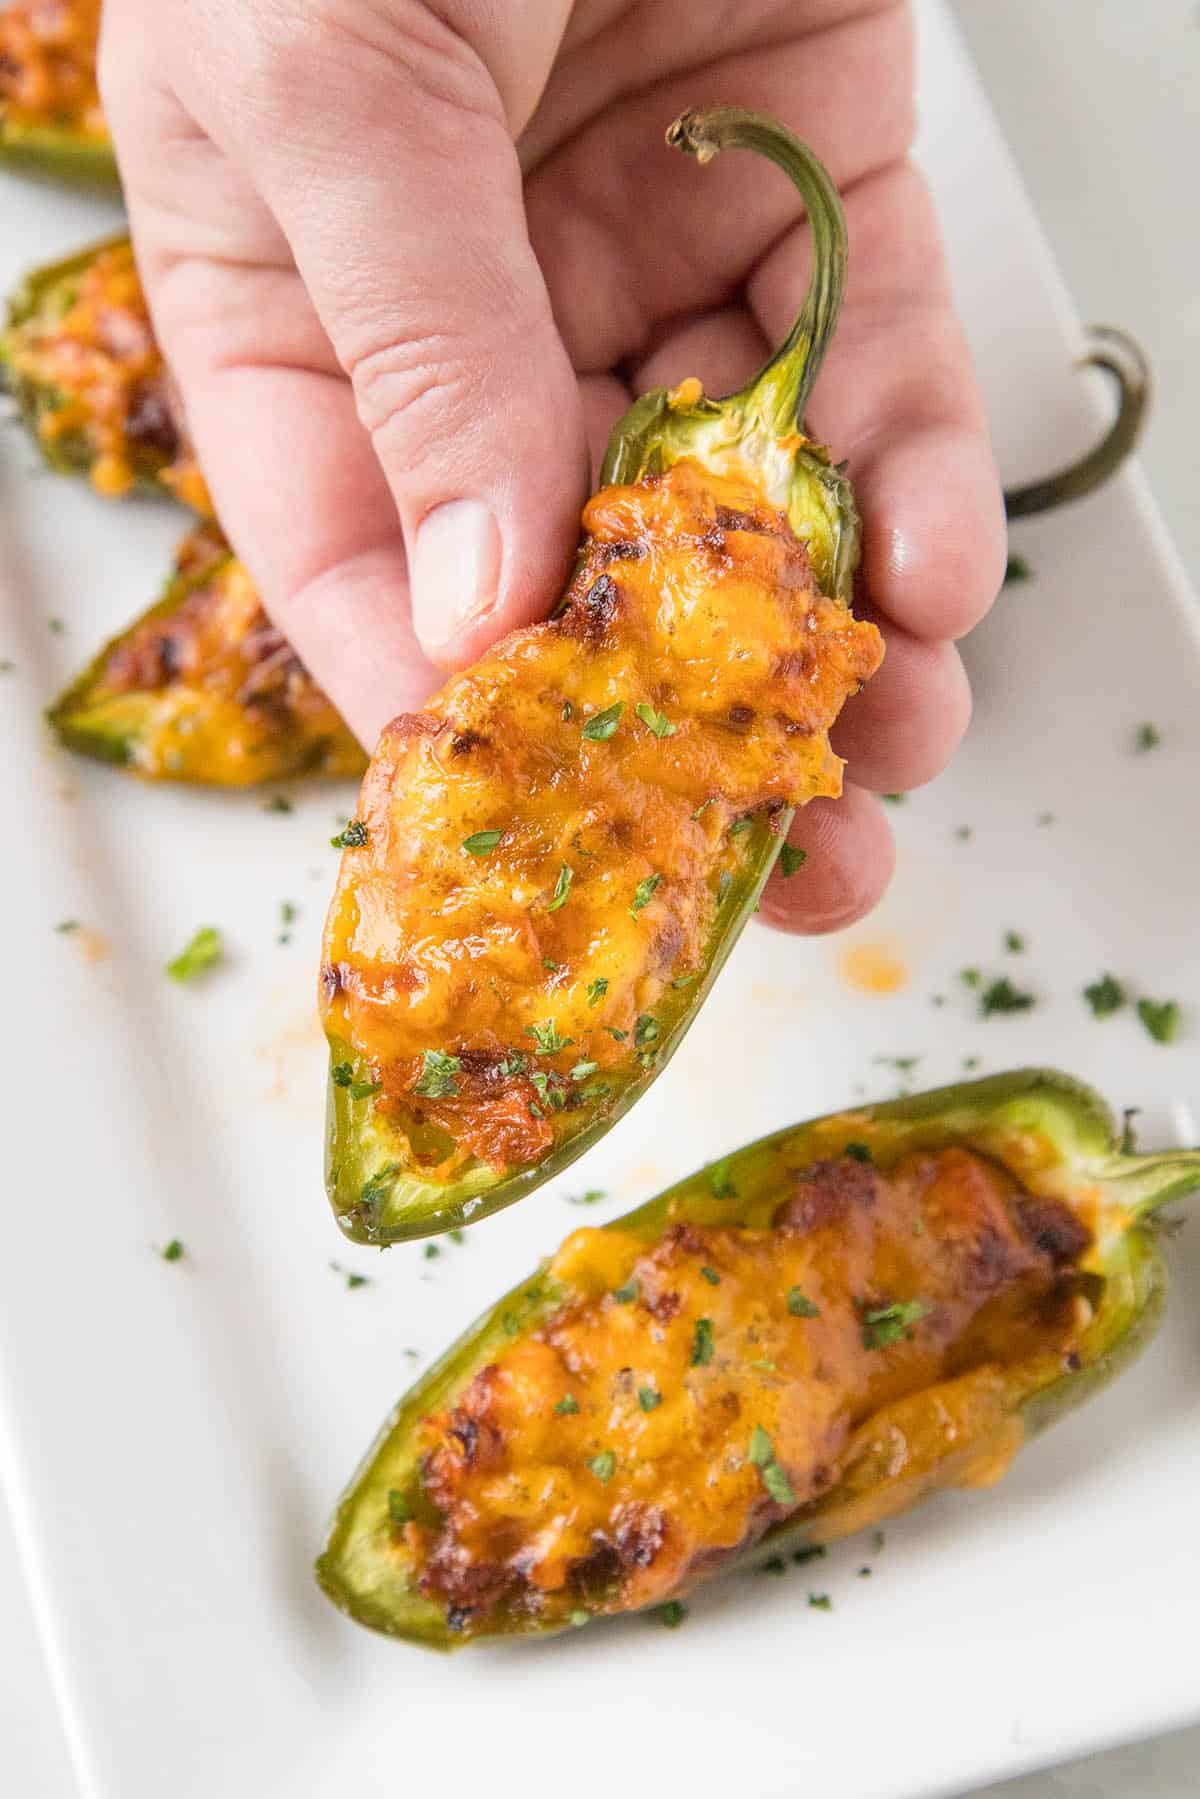 Pulled Pork-Sriracha Jalapeno Poppers - In my hand. I'm ready to eat it!